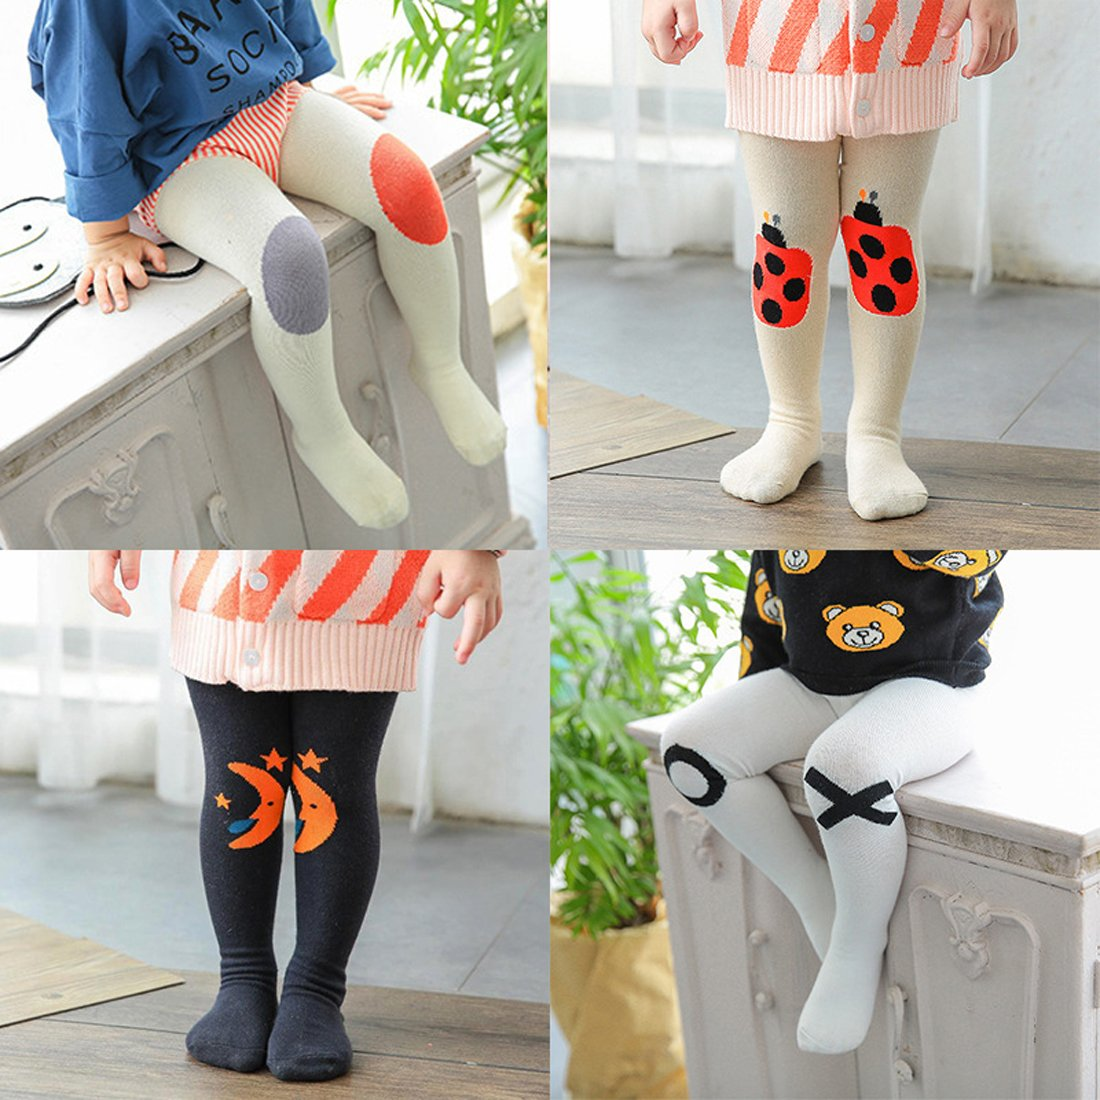 c91f37de4 Gaorui Toddler Baby Tights Cotton Kids Pantyhose for 1-3 Years Infant  Leggings with feet Cartoon Trousers Cute Animal Socks Stockings HOUBBKALKW